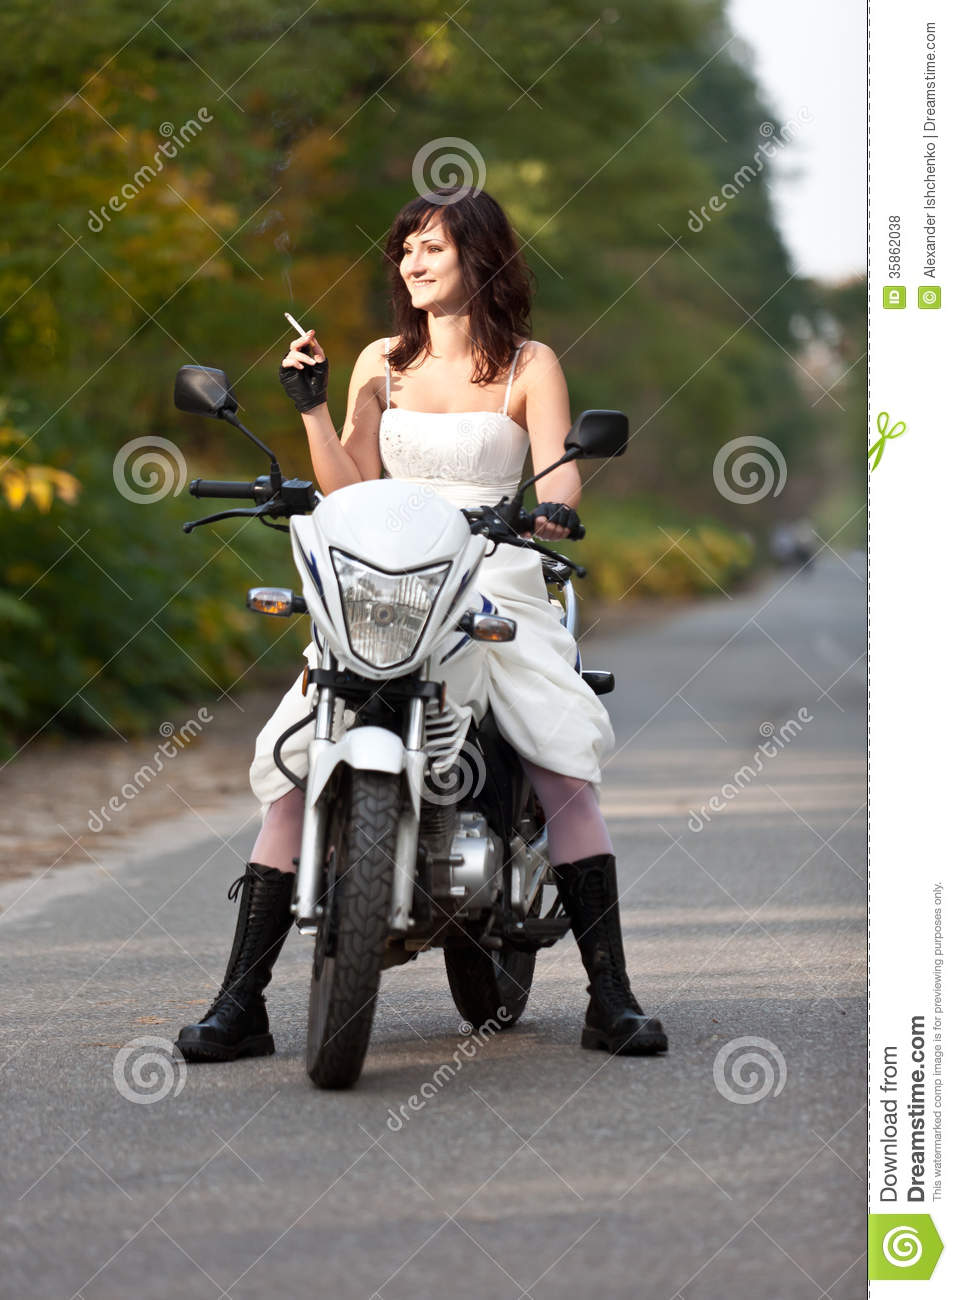 Bride on motorcycle royalty free stock photos image 35862038